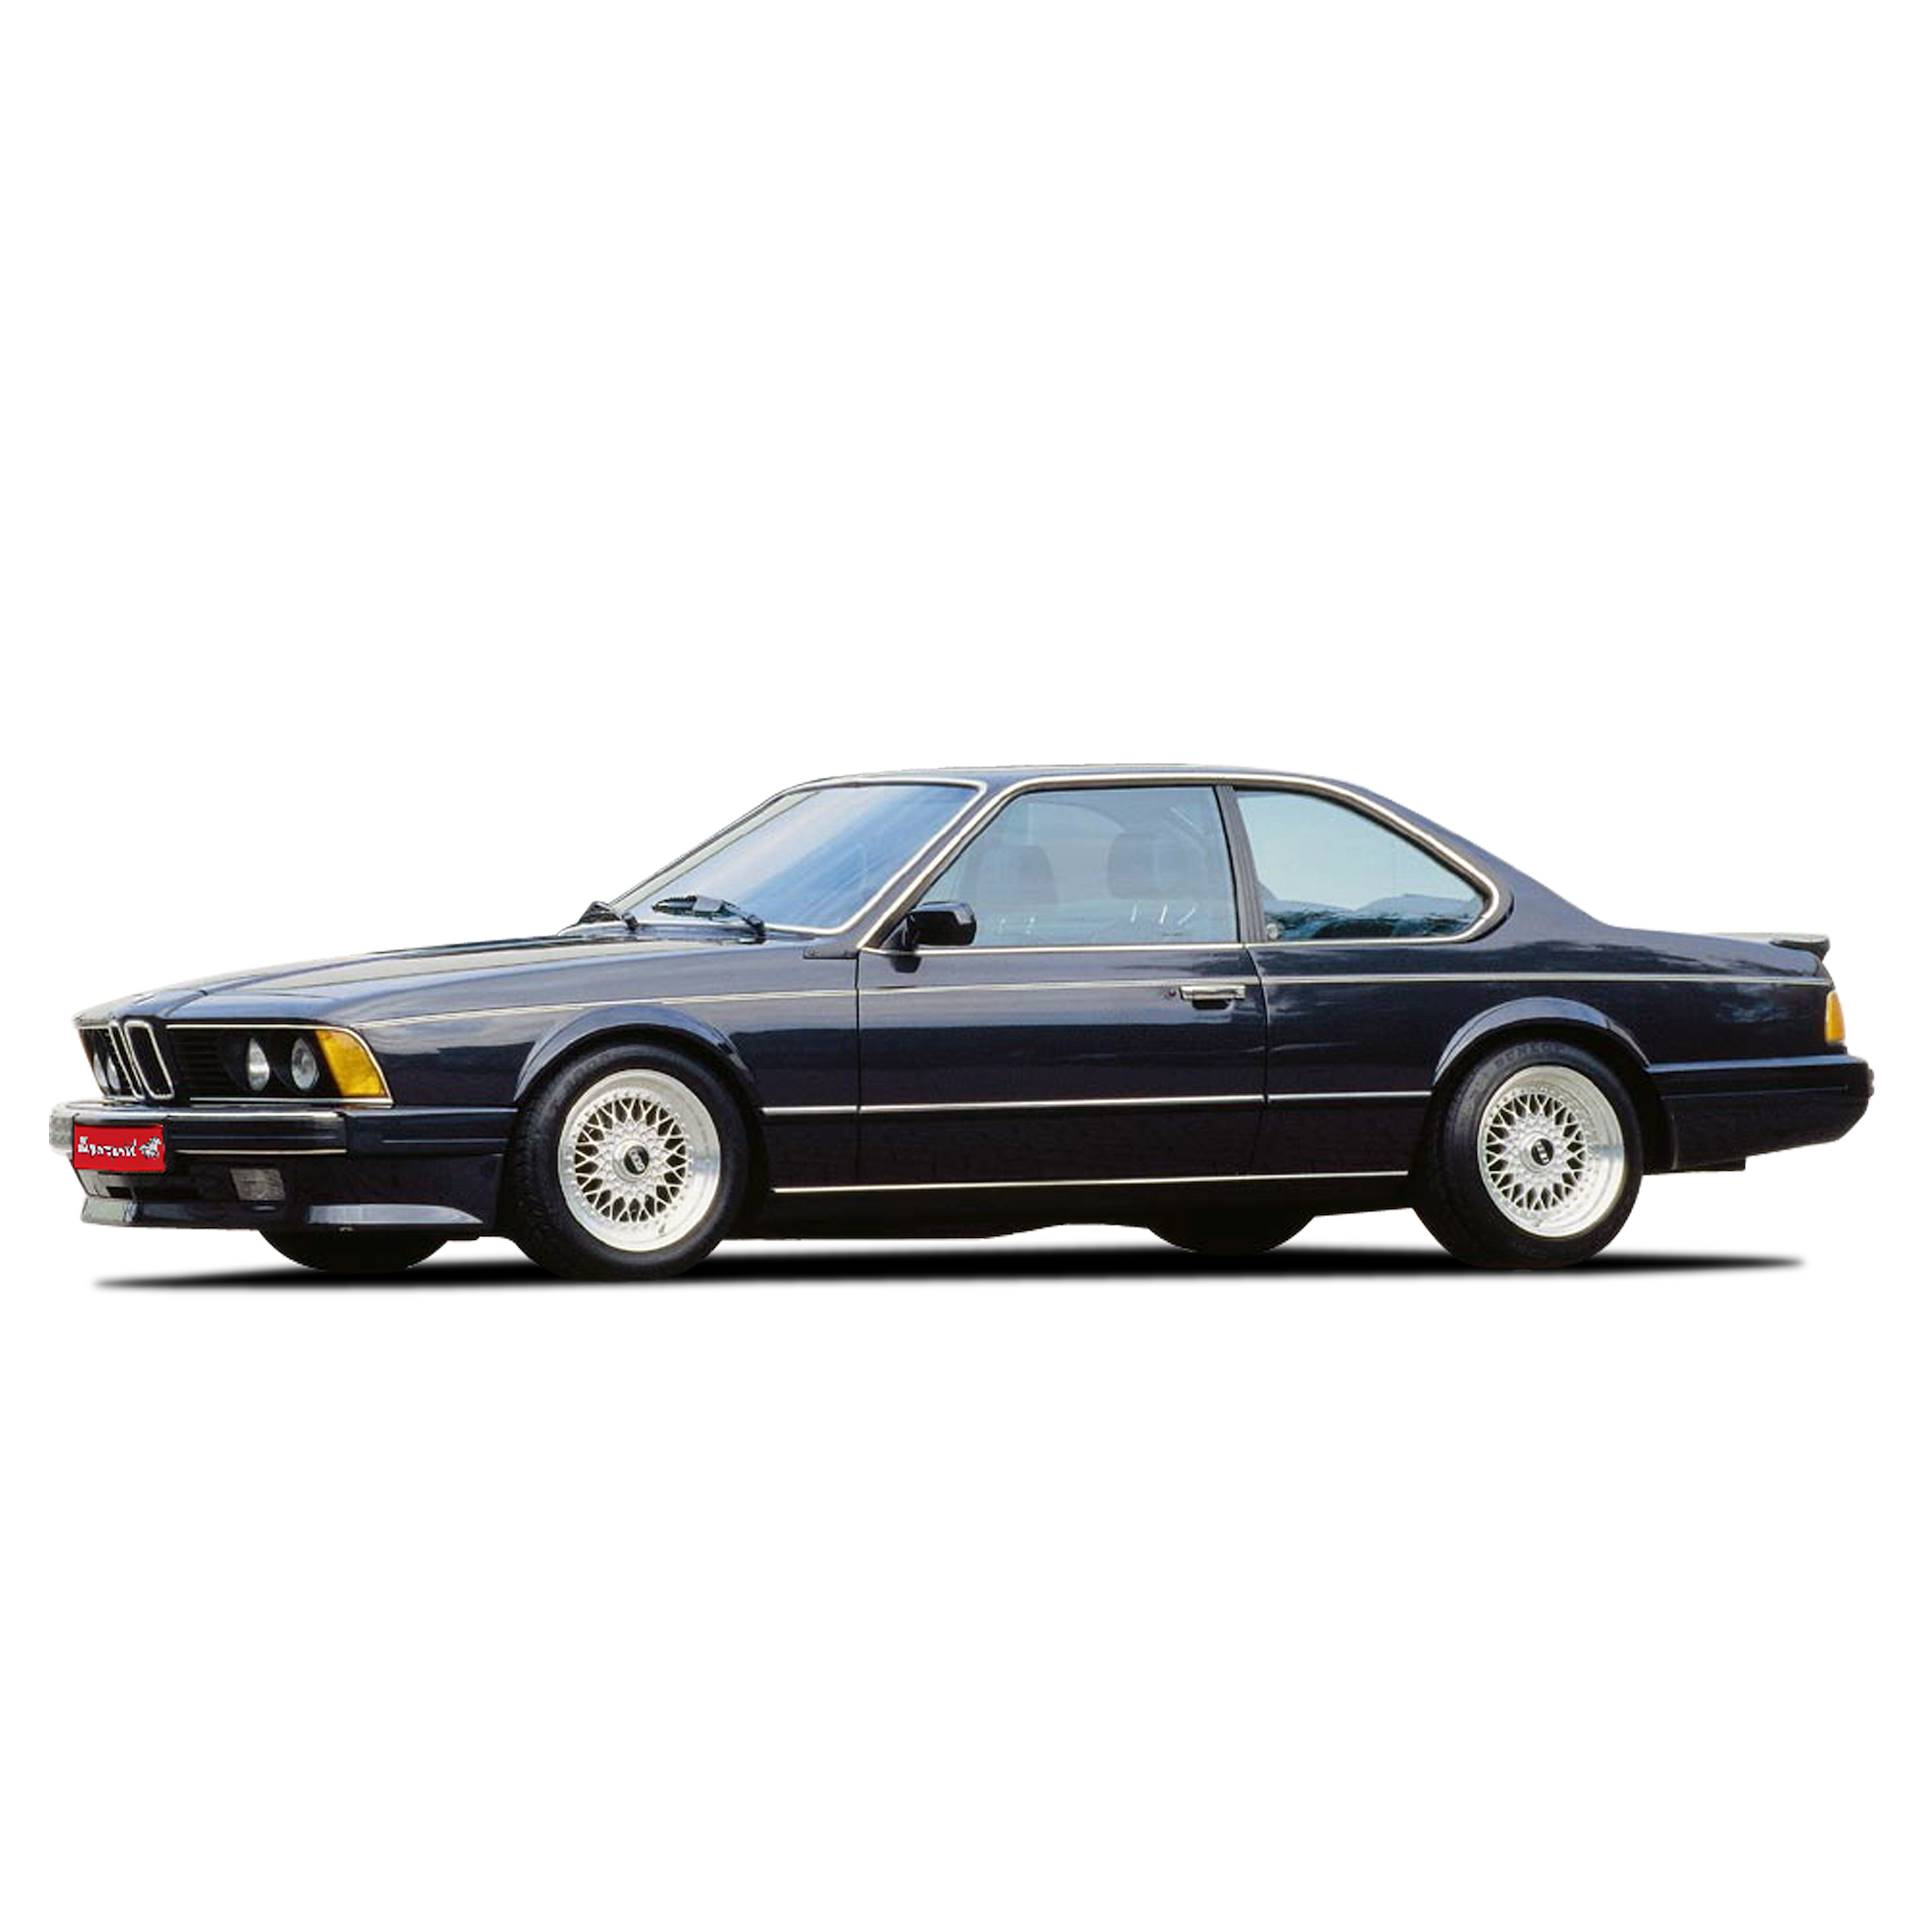 BMW E24 635 CSi (M30) Kat. 6/'87 -> '89 (USA Model)